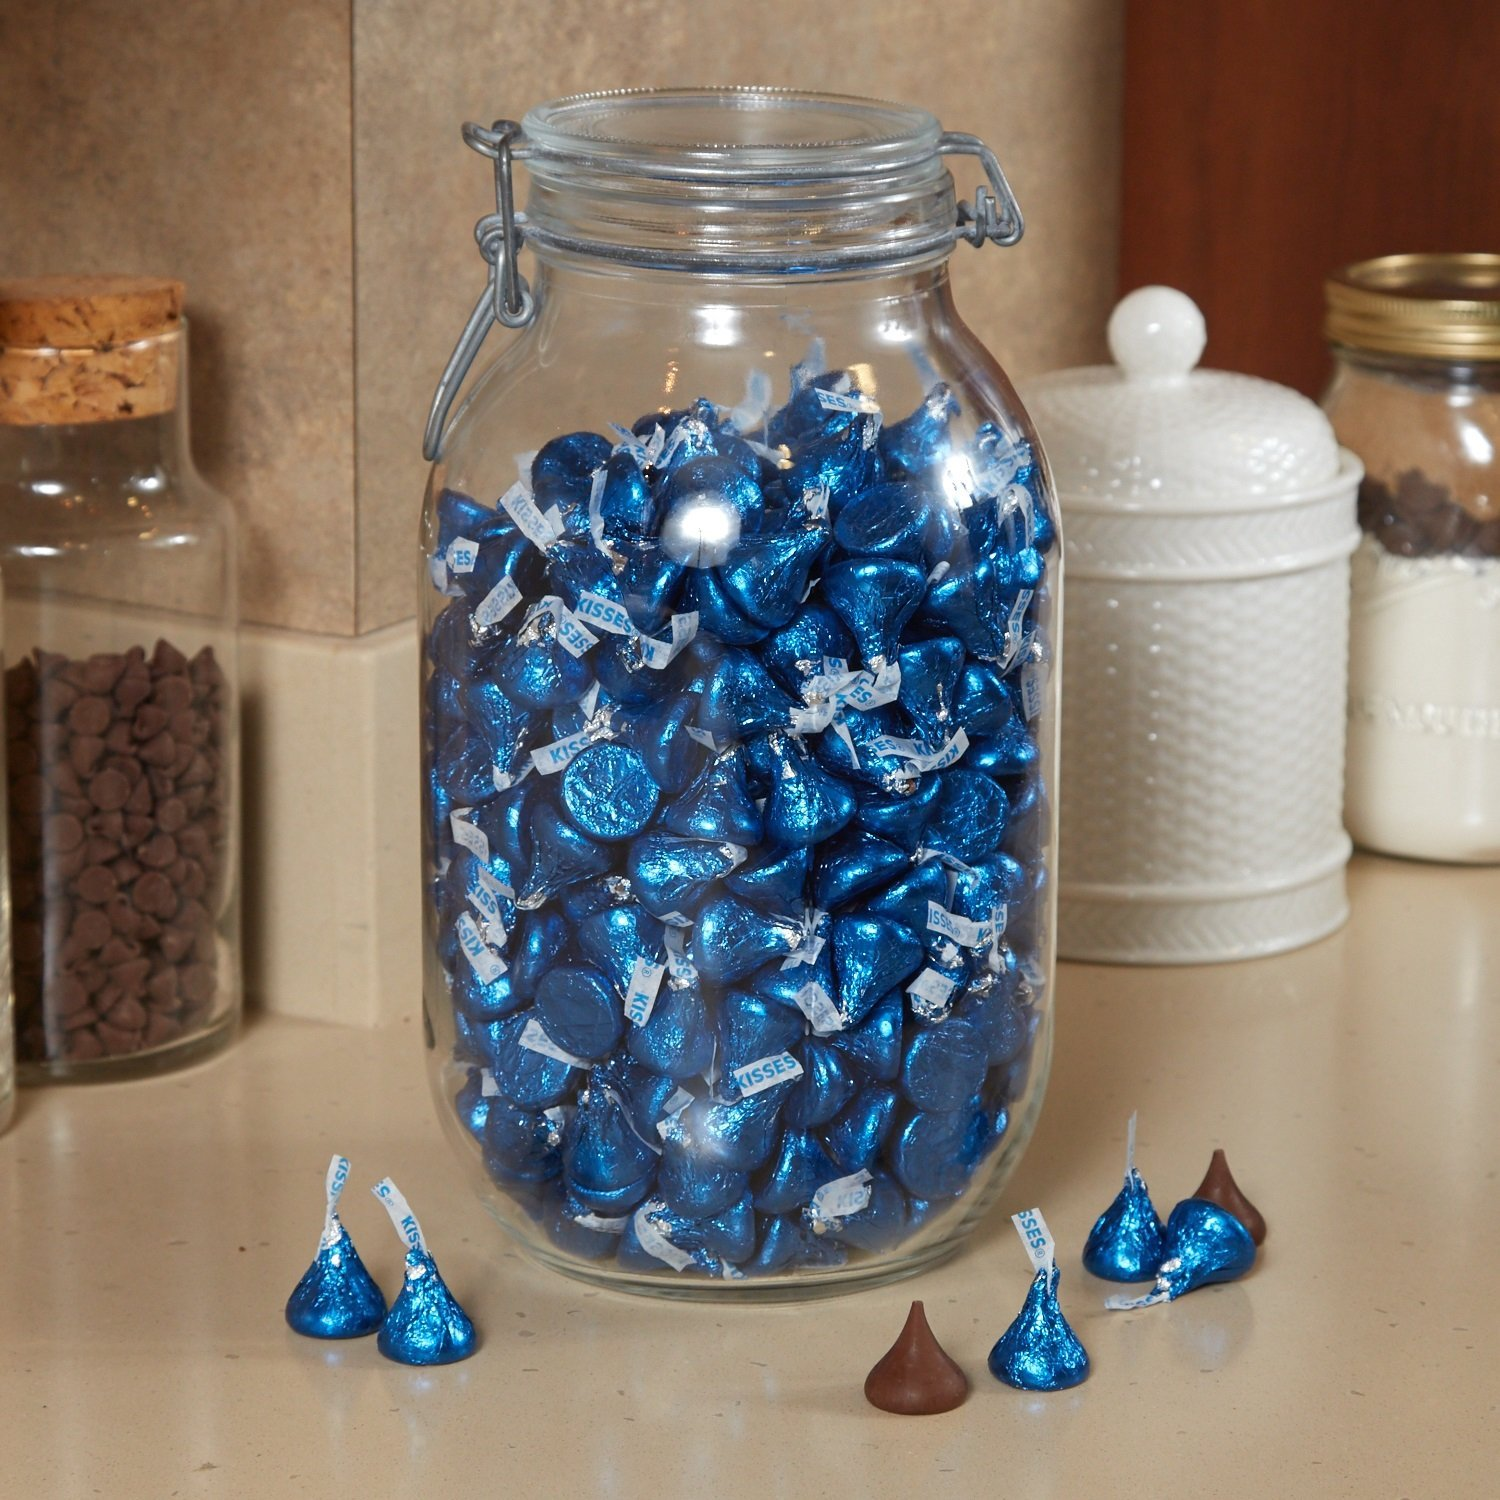 HERSHEY'S KISSES Chocolate Candy, Dark Blue Foils, 4.1lb Bulk Candy, approx. 400 Pieces. Perfect for Graduation and 4th of July Decorations by Kisses (Image #9)